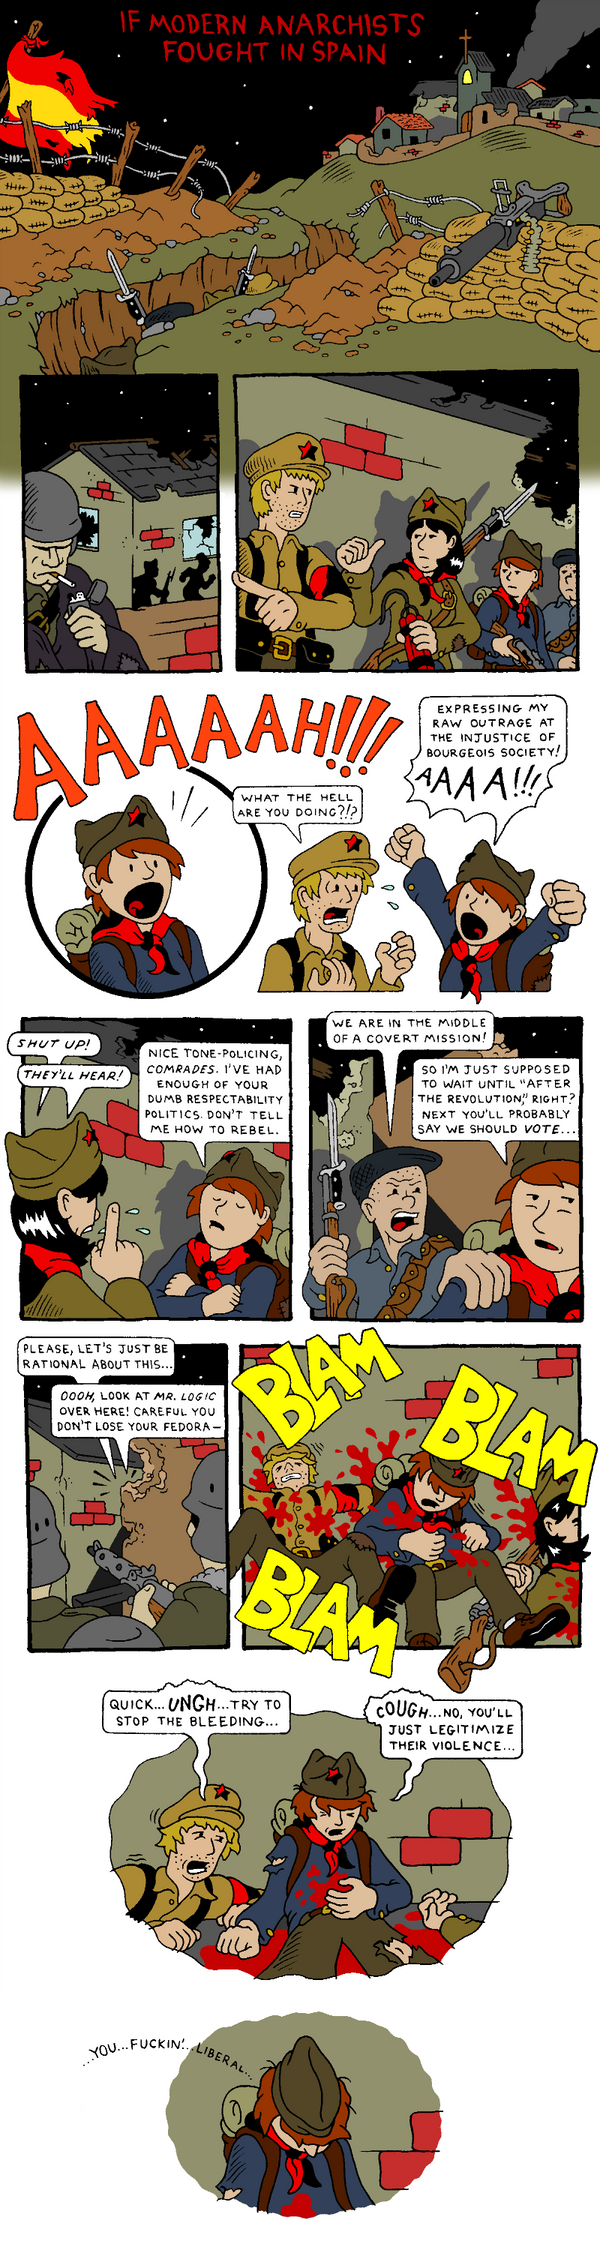 [Image: imafs_2__the_next_offensive_by_rednblack...9e1x0z.png]